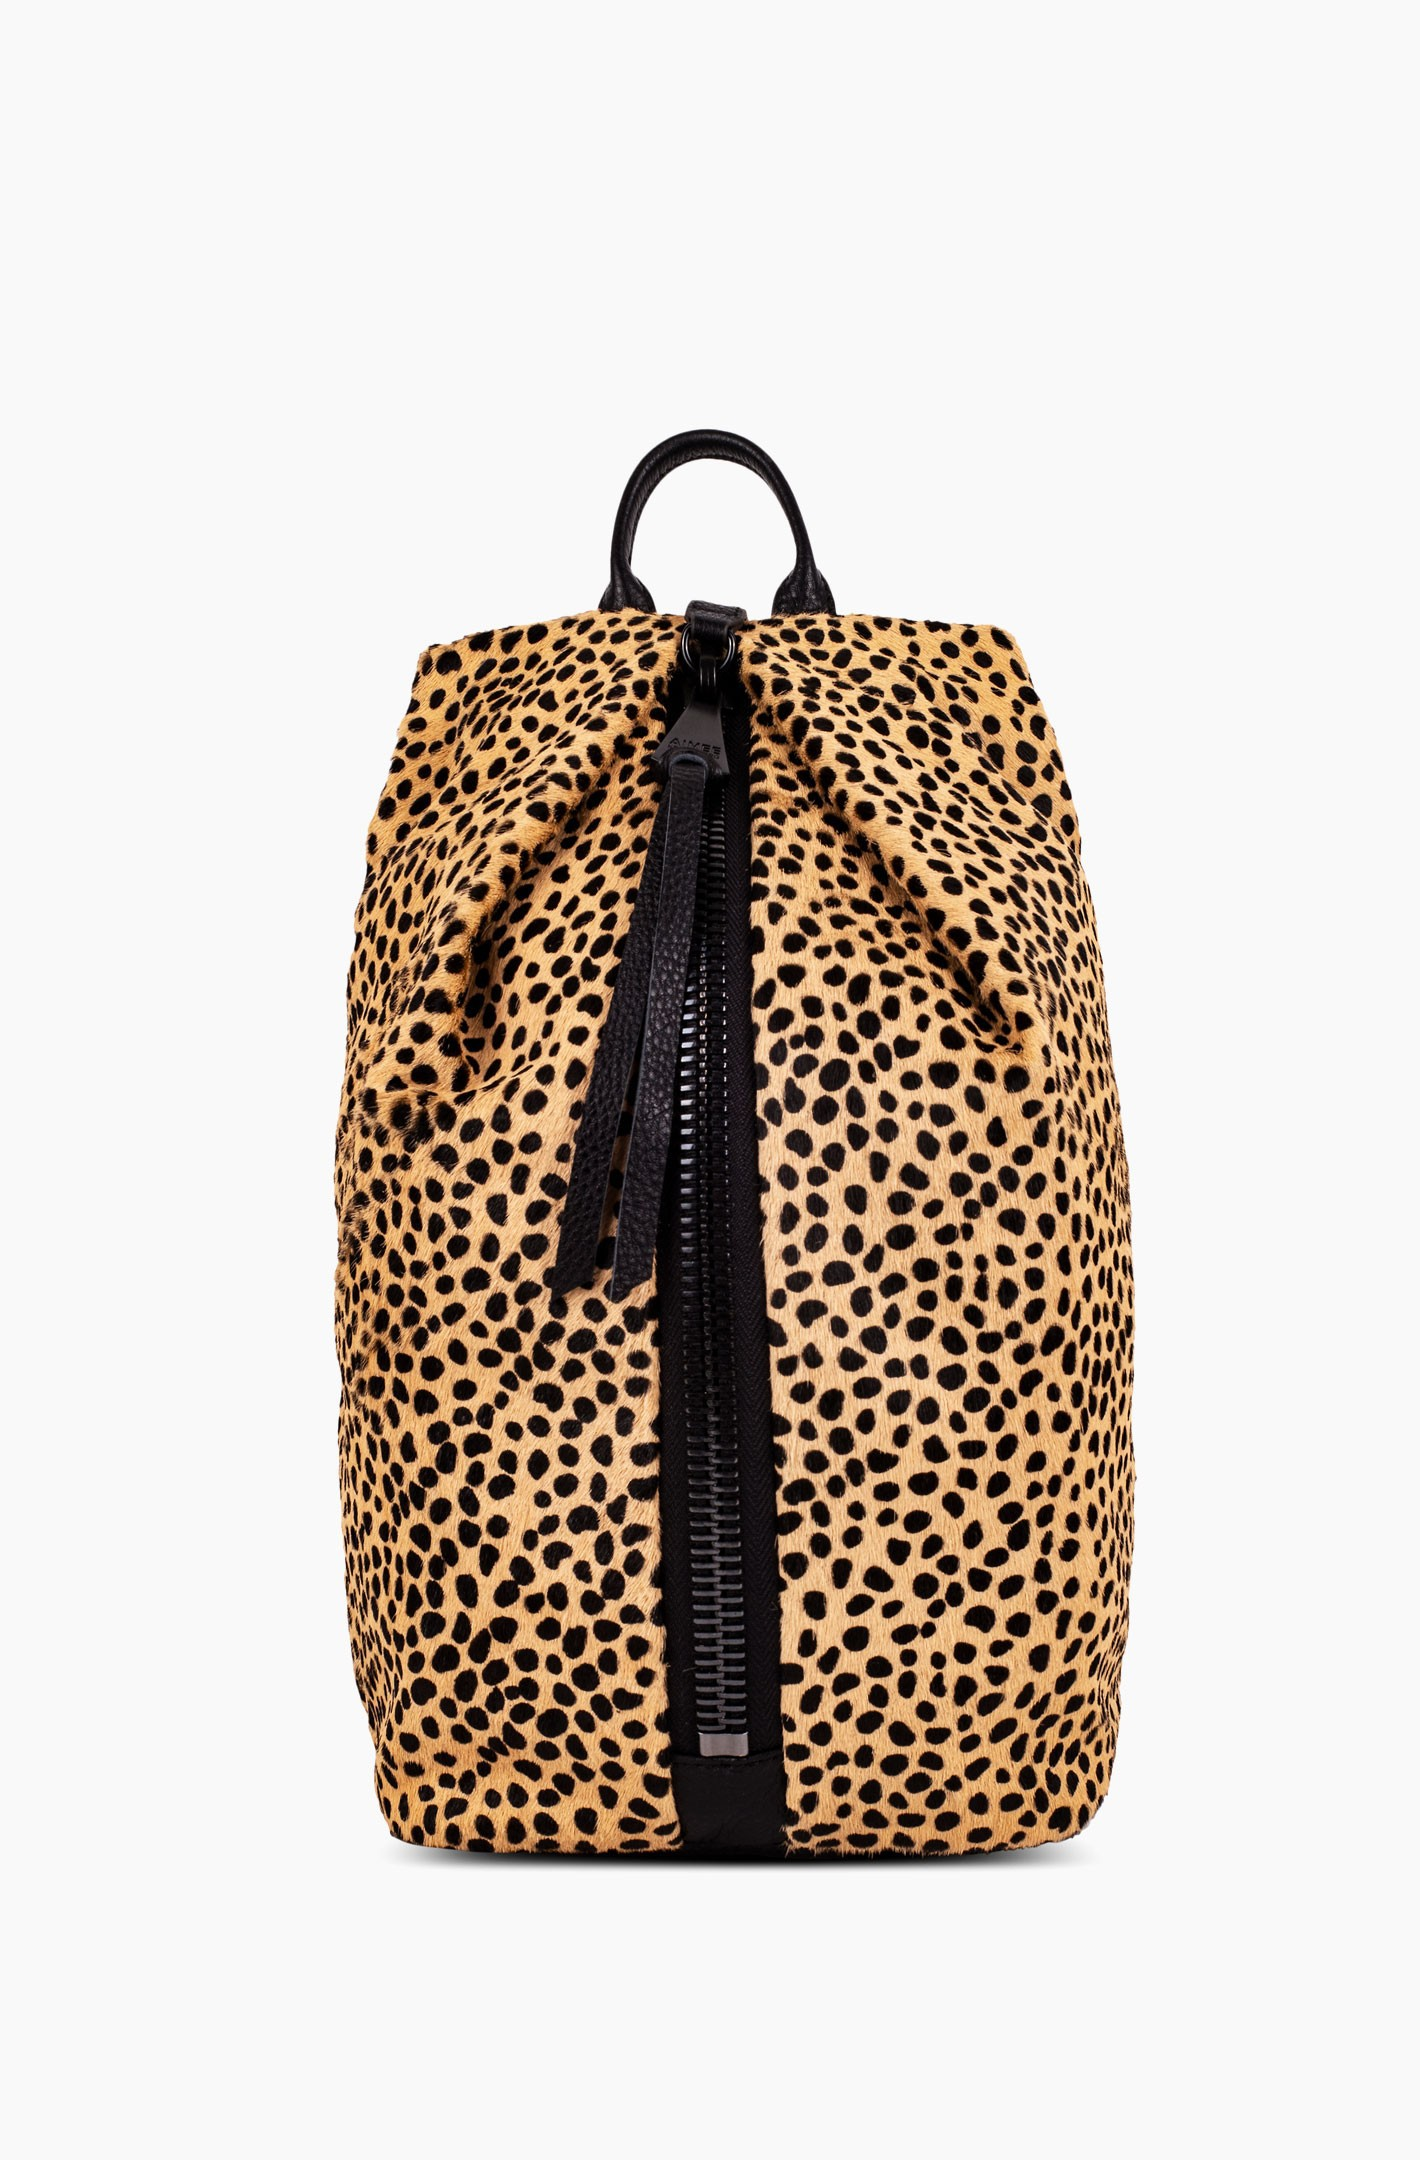 Tamitha Backpack, Natural Cheetah Haircalf